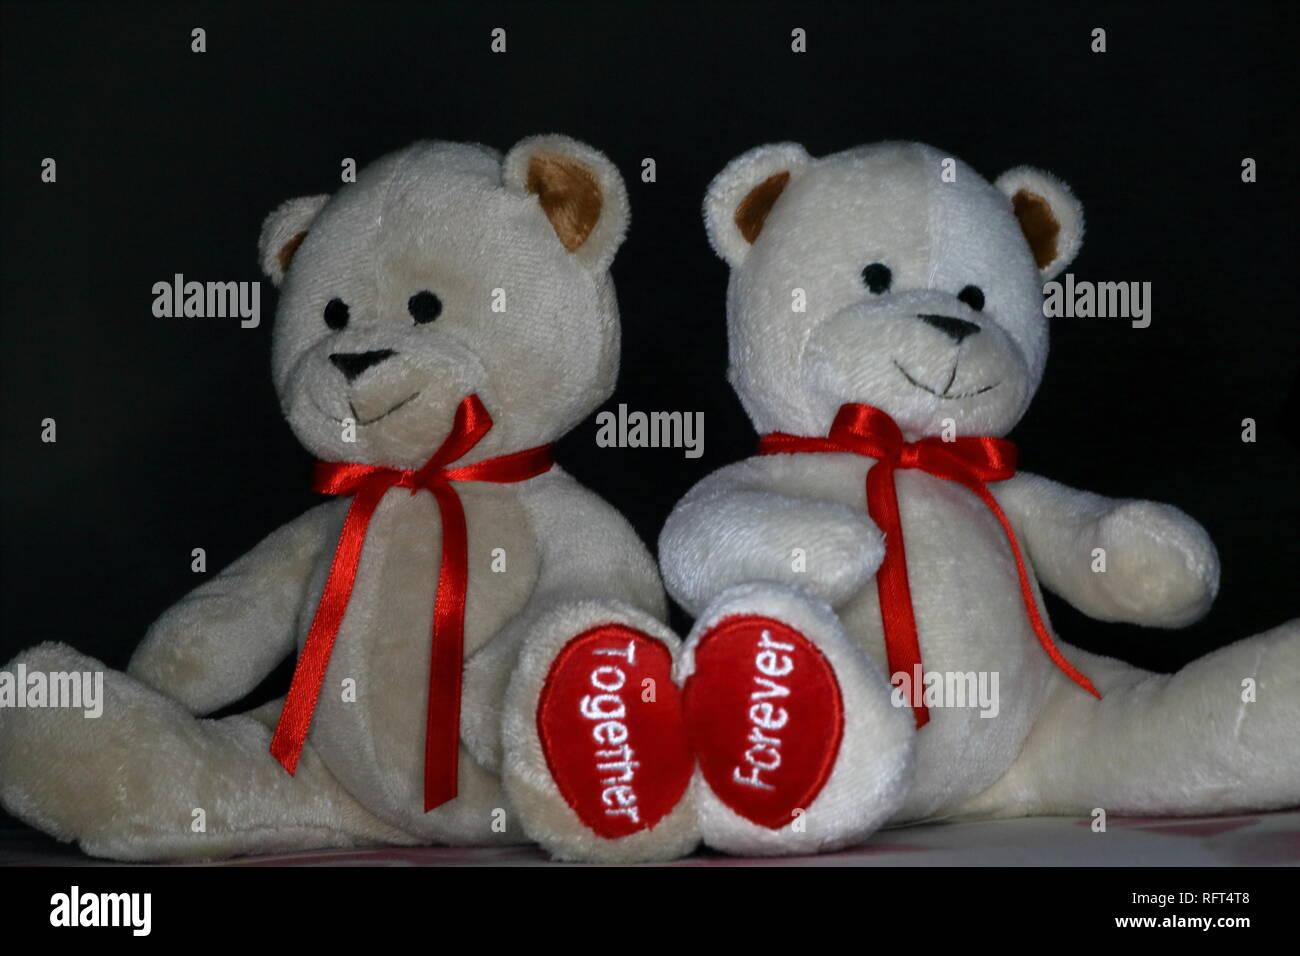 a pair of small soft toy bears with a visible word on their touching paws - Stock Image